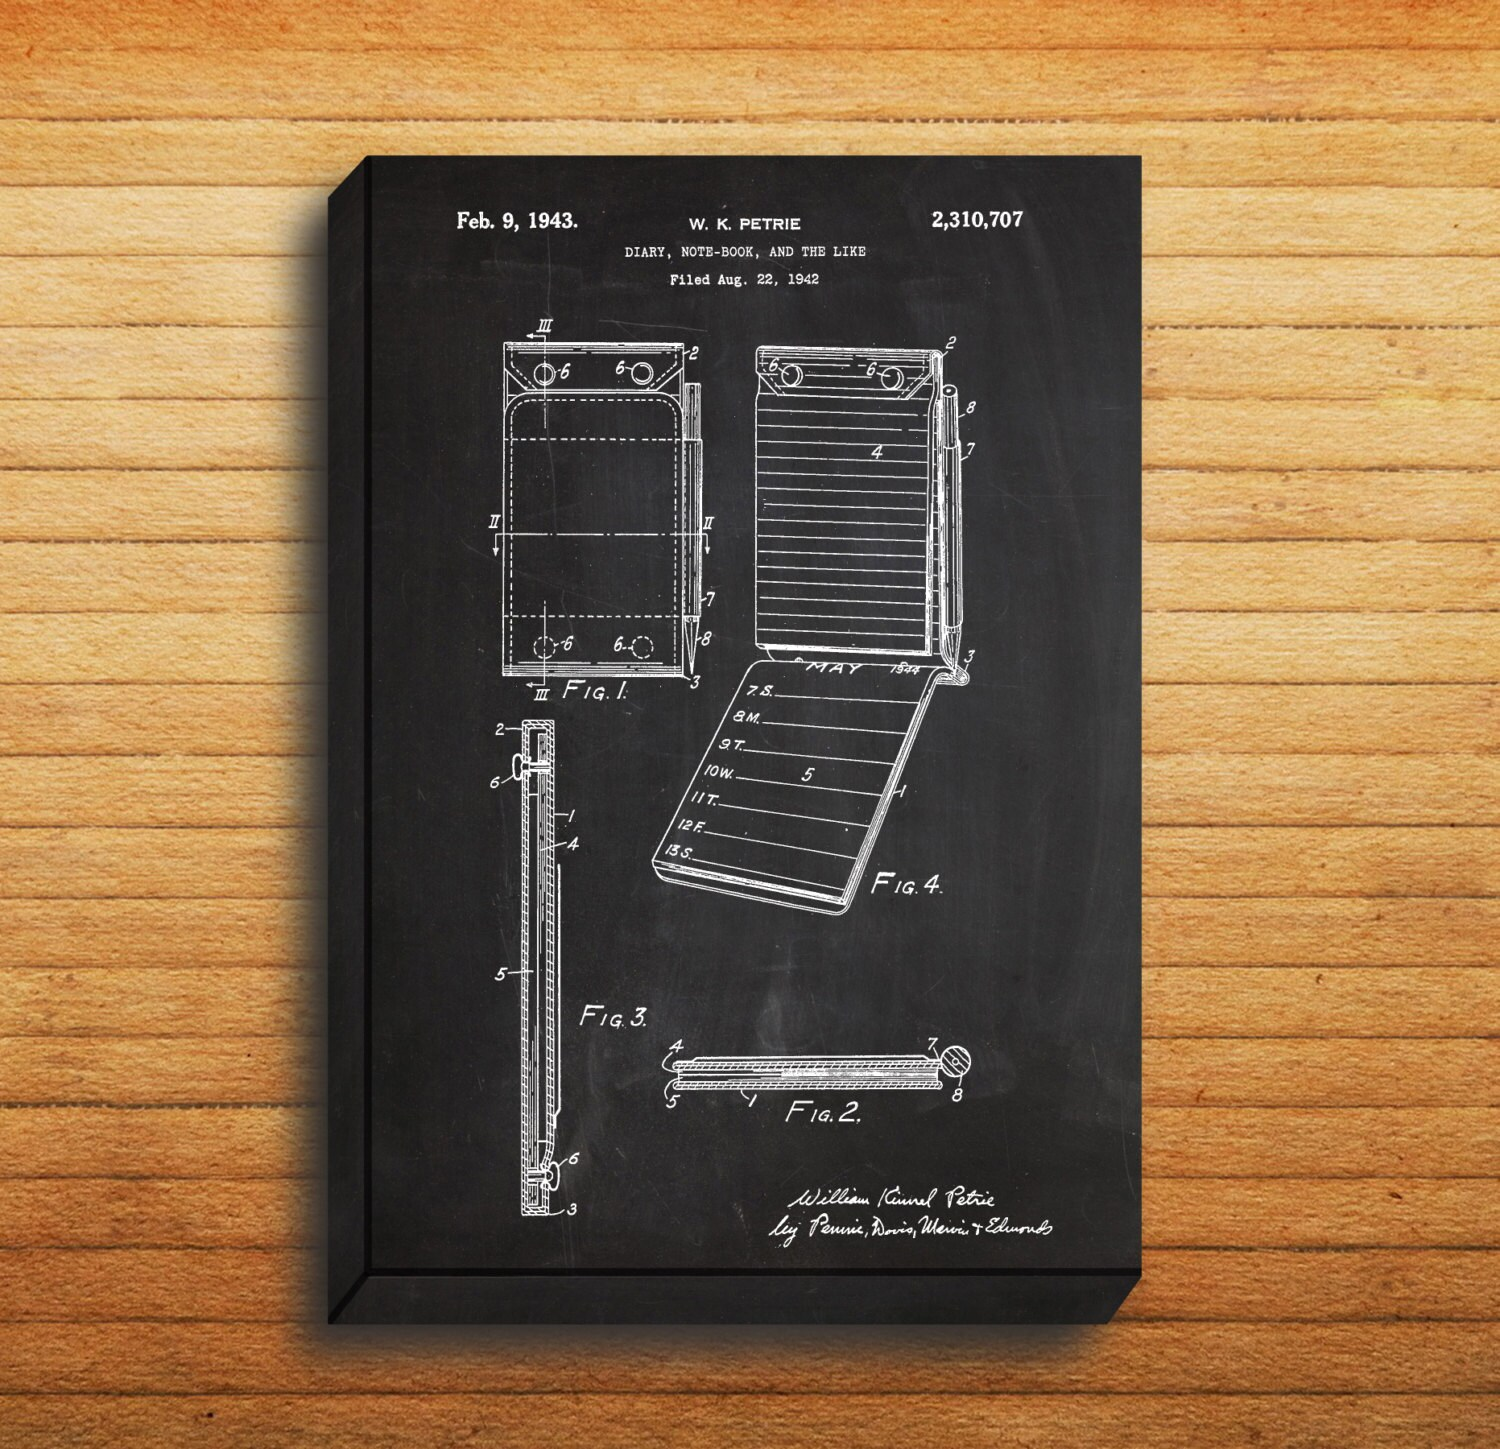 Canvas notebook patent notebook poster notebook blueprint canvas notebook patent notebook poster notebook blueprint notebook print notebook art notebook decor malvernweather Image collections